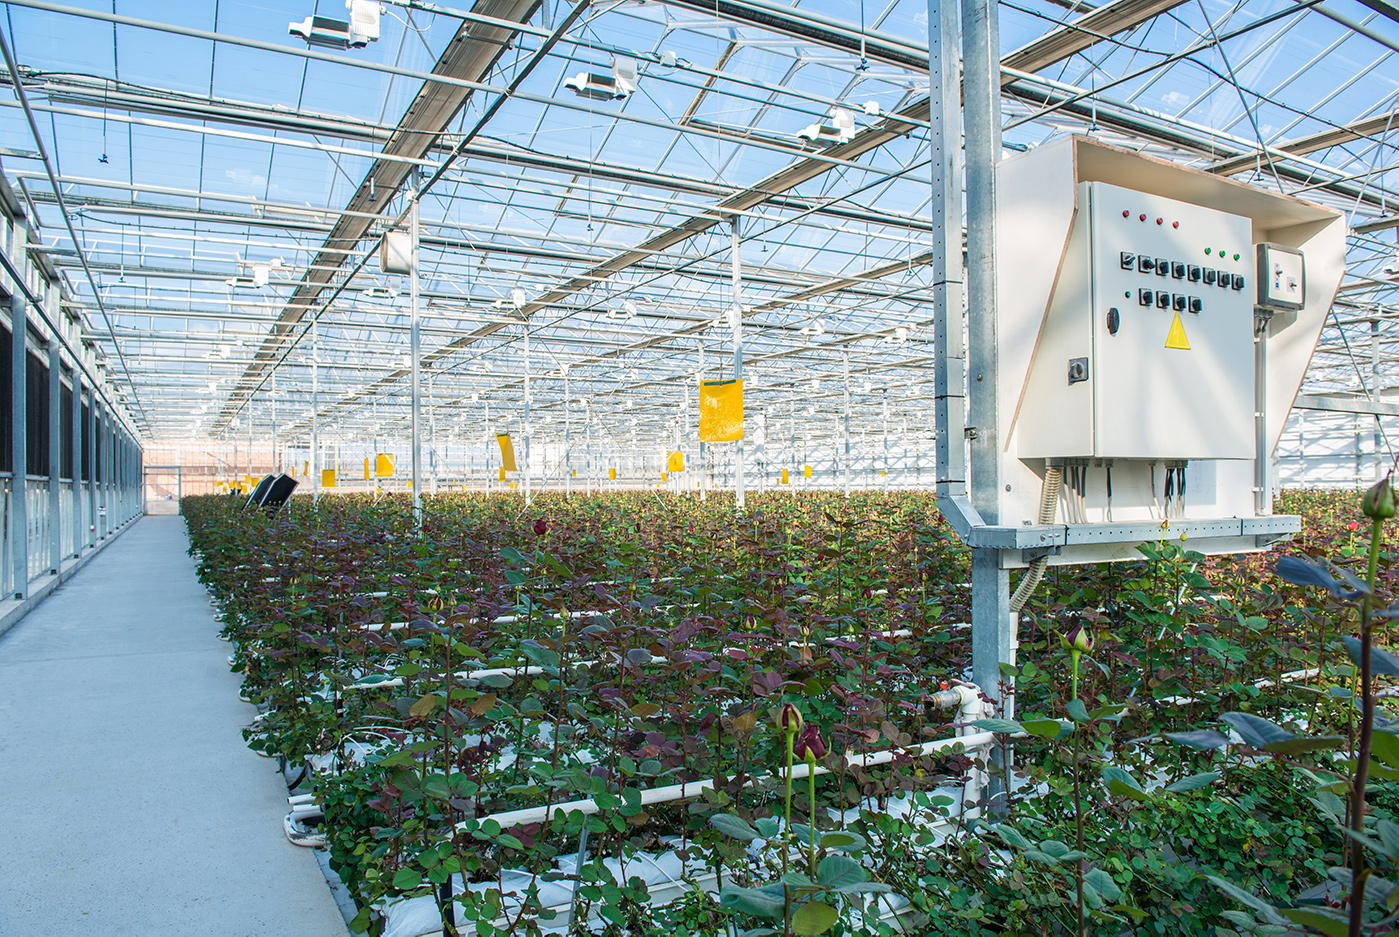 A Commercial Growing Controller System inside a Professional Greenhouse